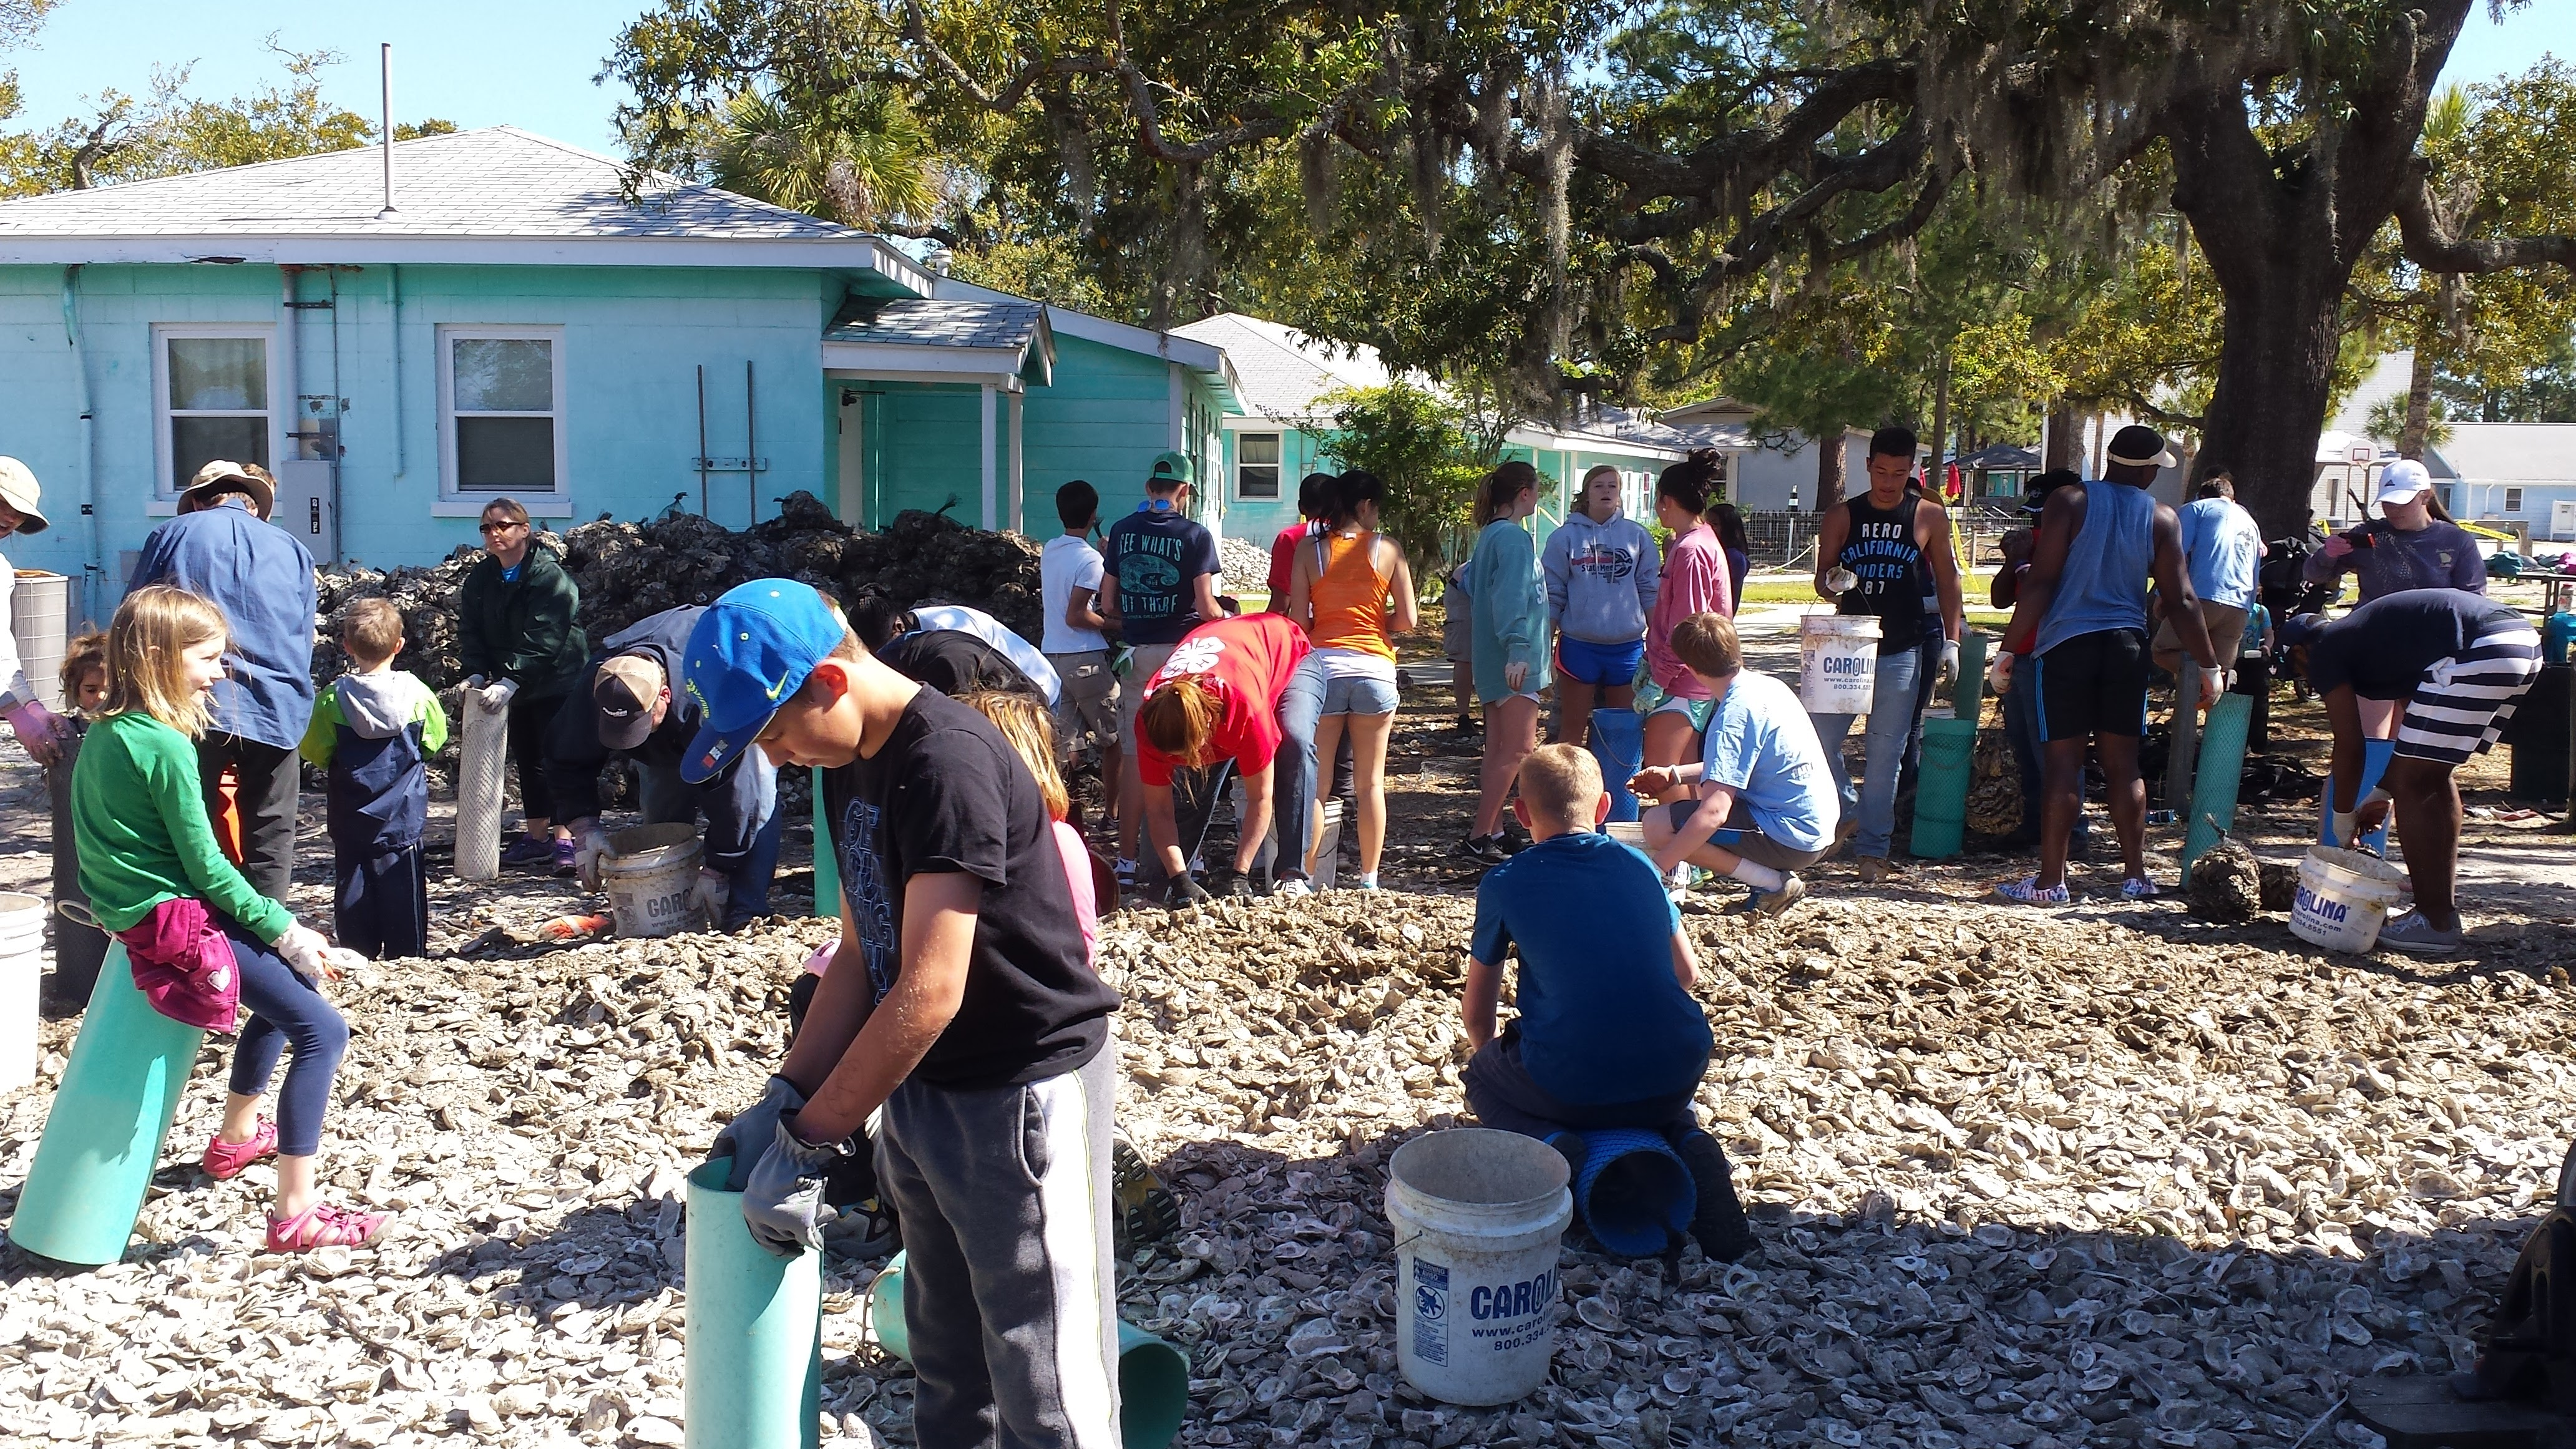 Volunteers fill Naltex bags with oyster shells at Burton 4-H Center on Tybee Island on April 9 to help build a living shoreline to prevent erosion at the environmental education center.